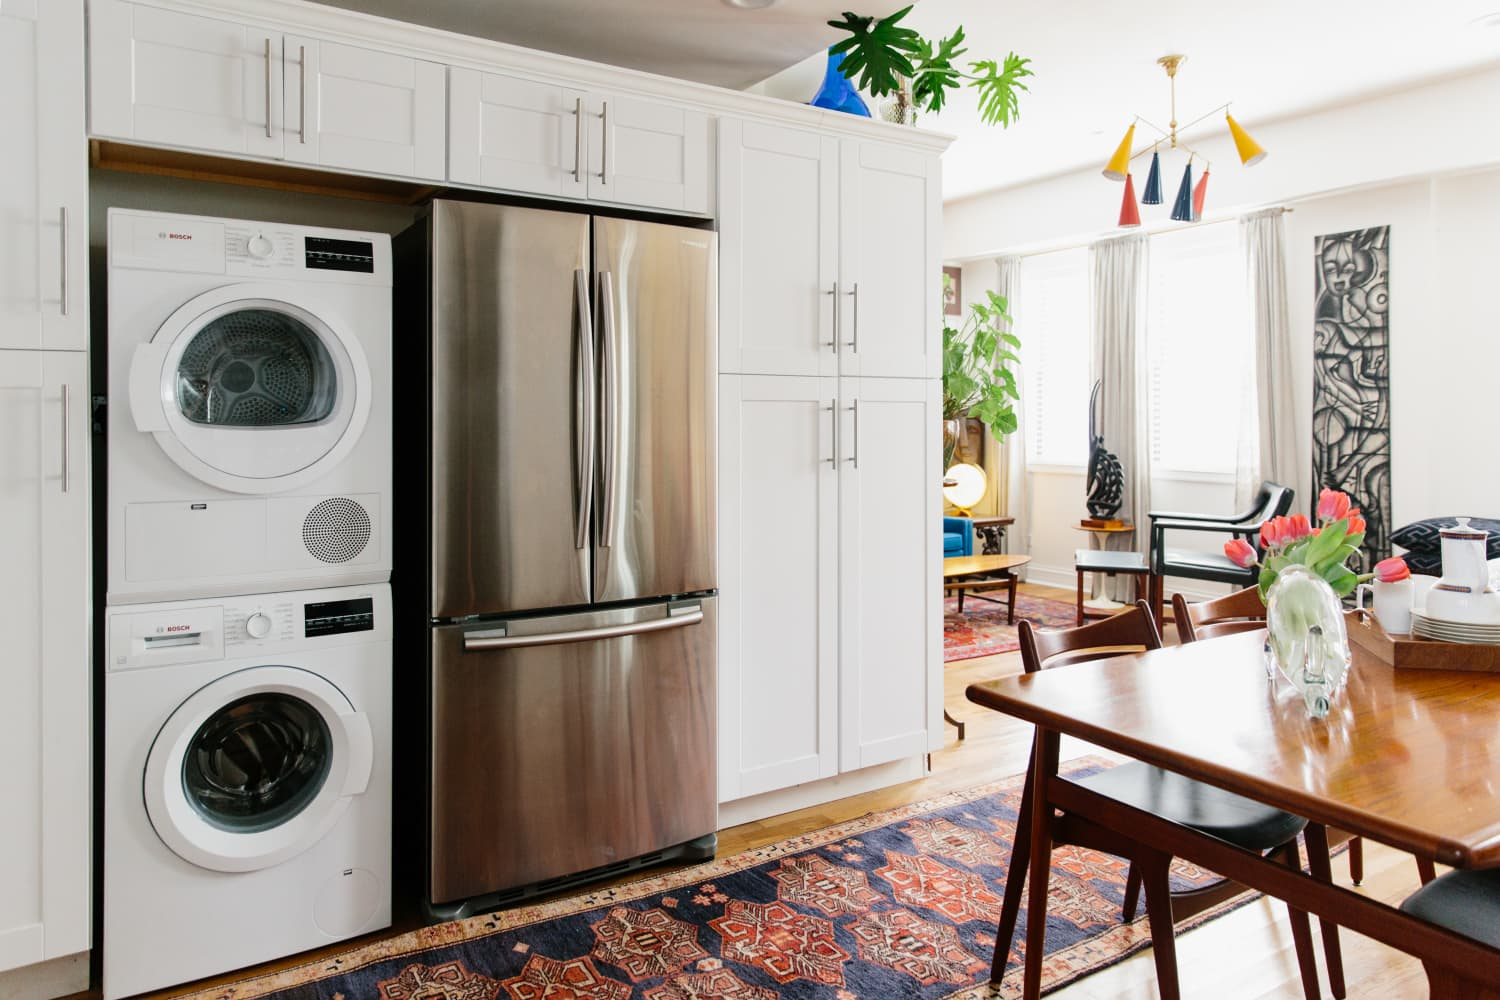 This Pinterest-Favorite Laundry Trend Could Be Dangerous, Warns American Cleaning Institute